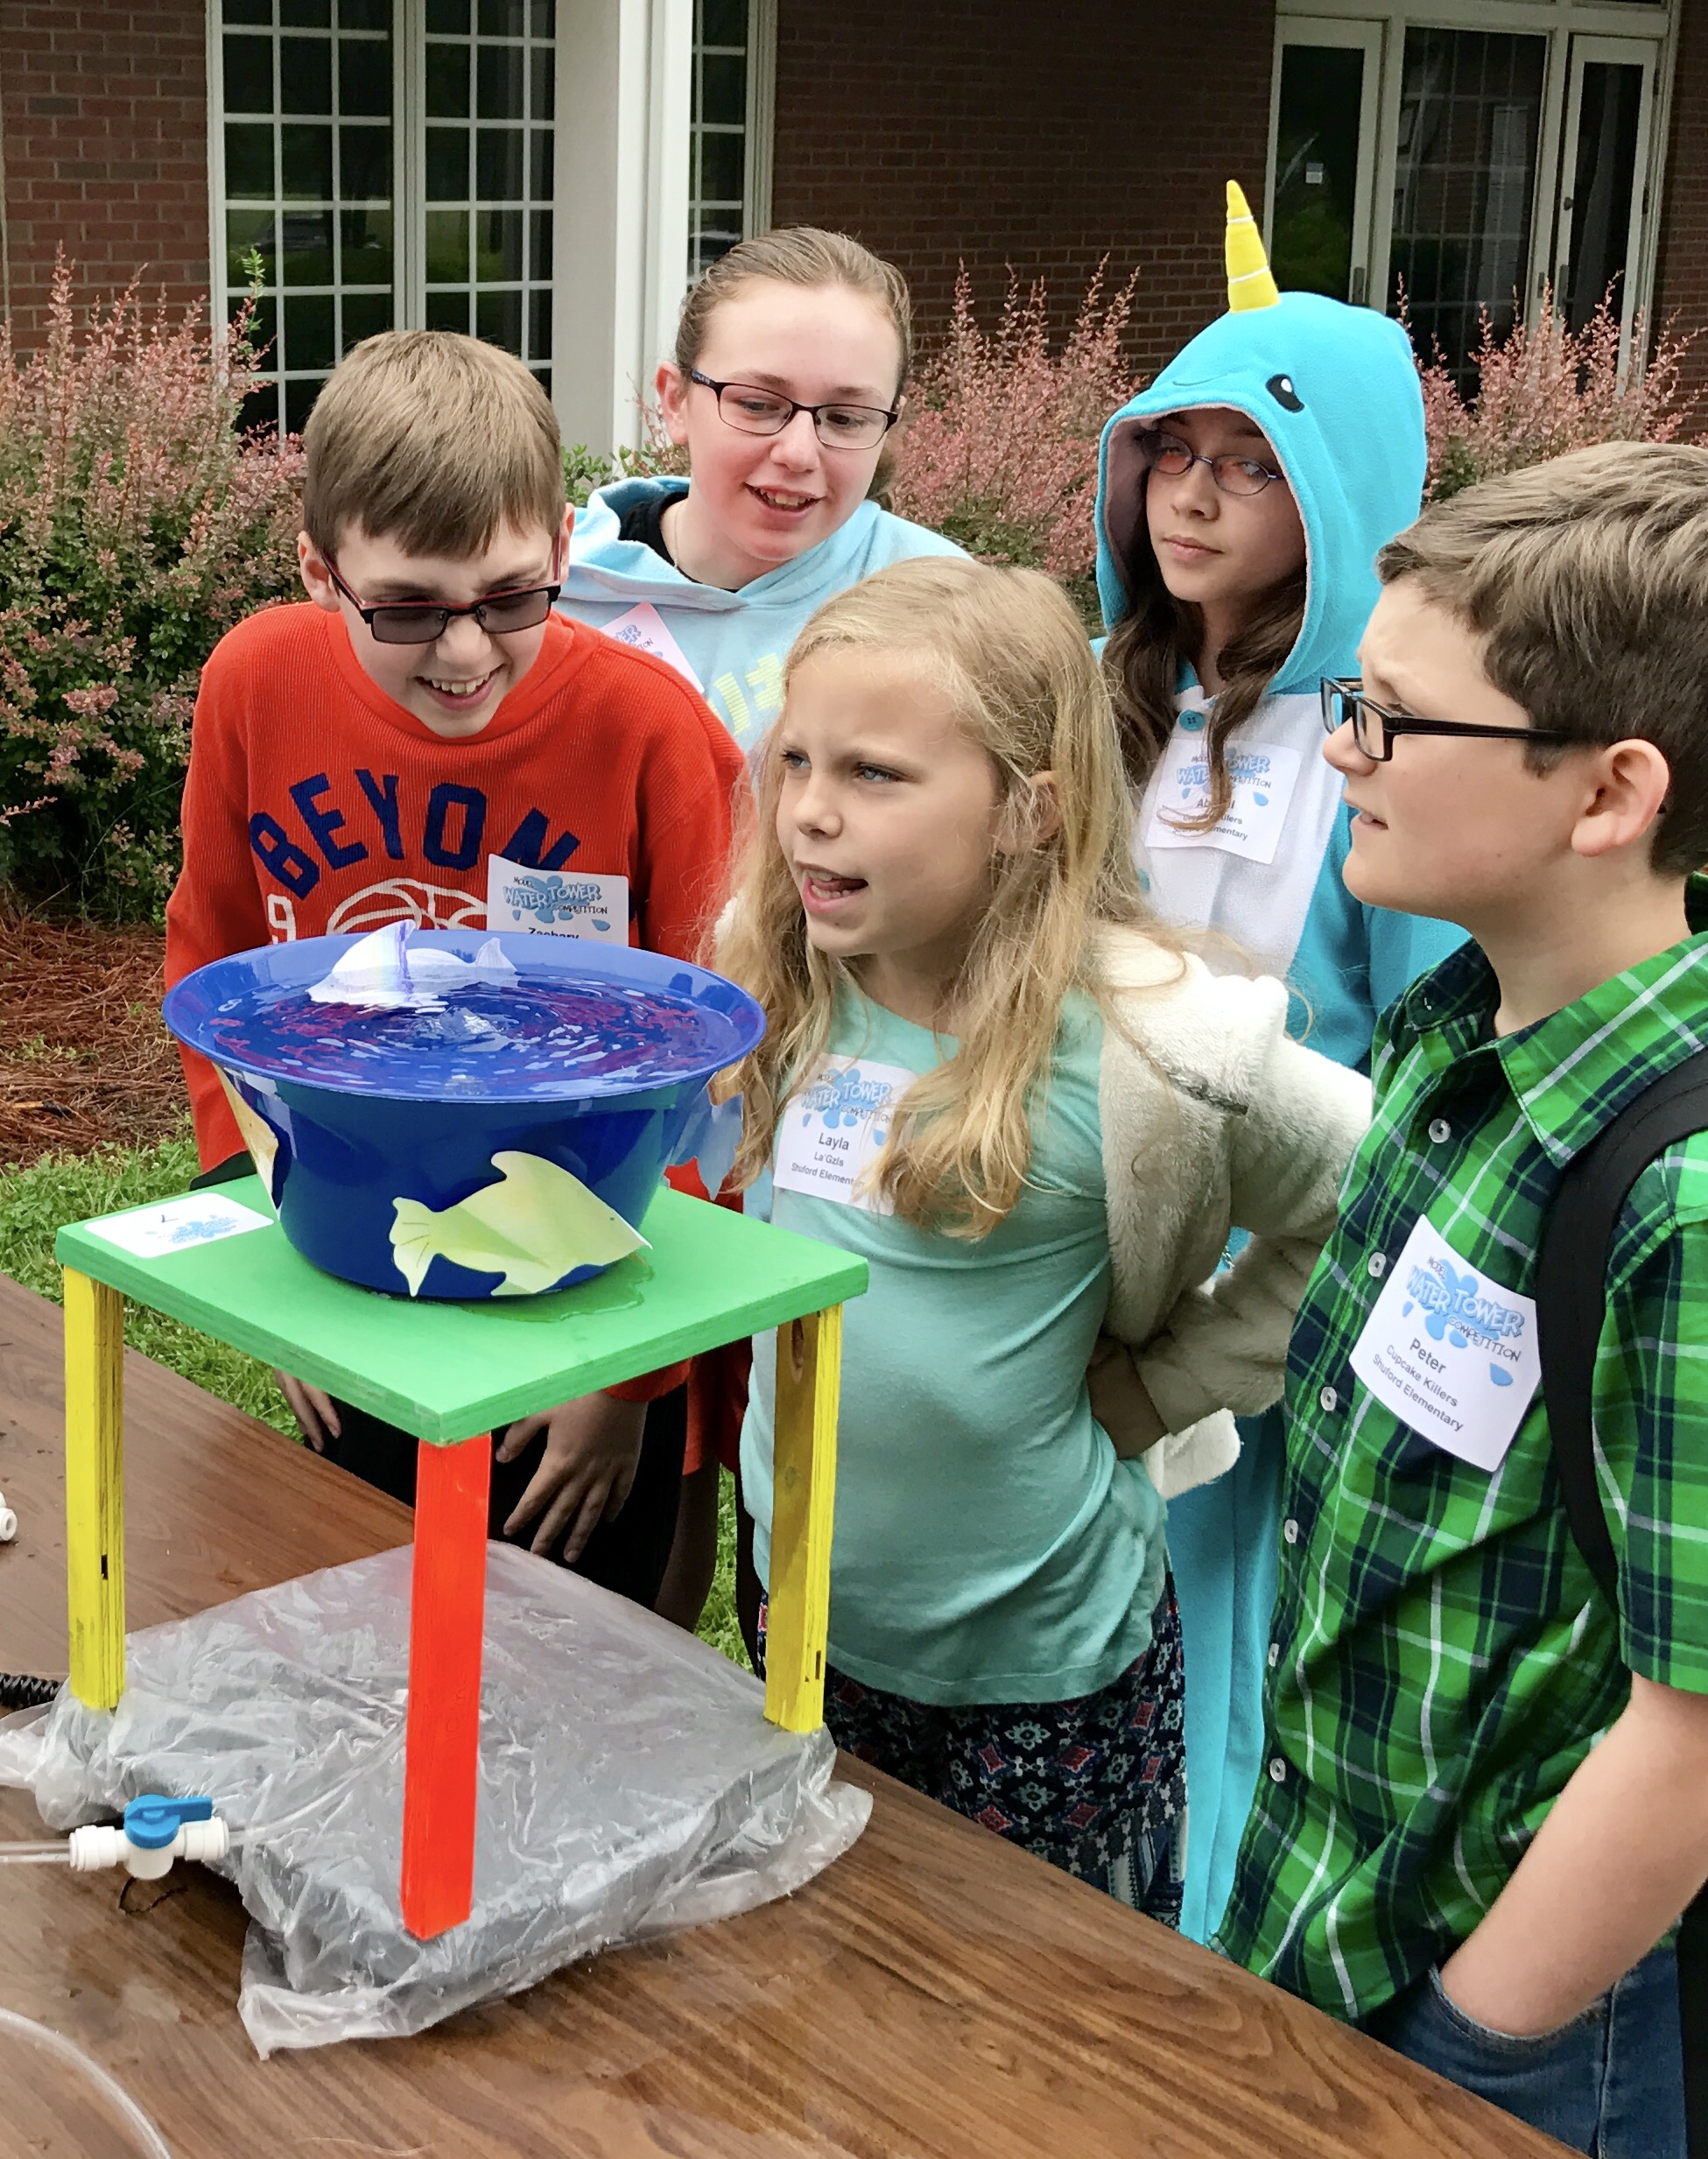 Children looking at homemade water tower design outside